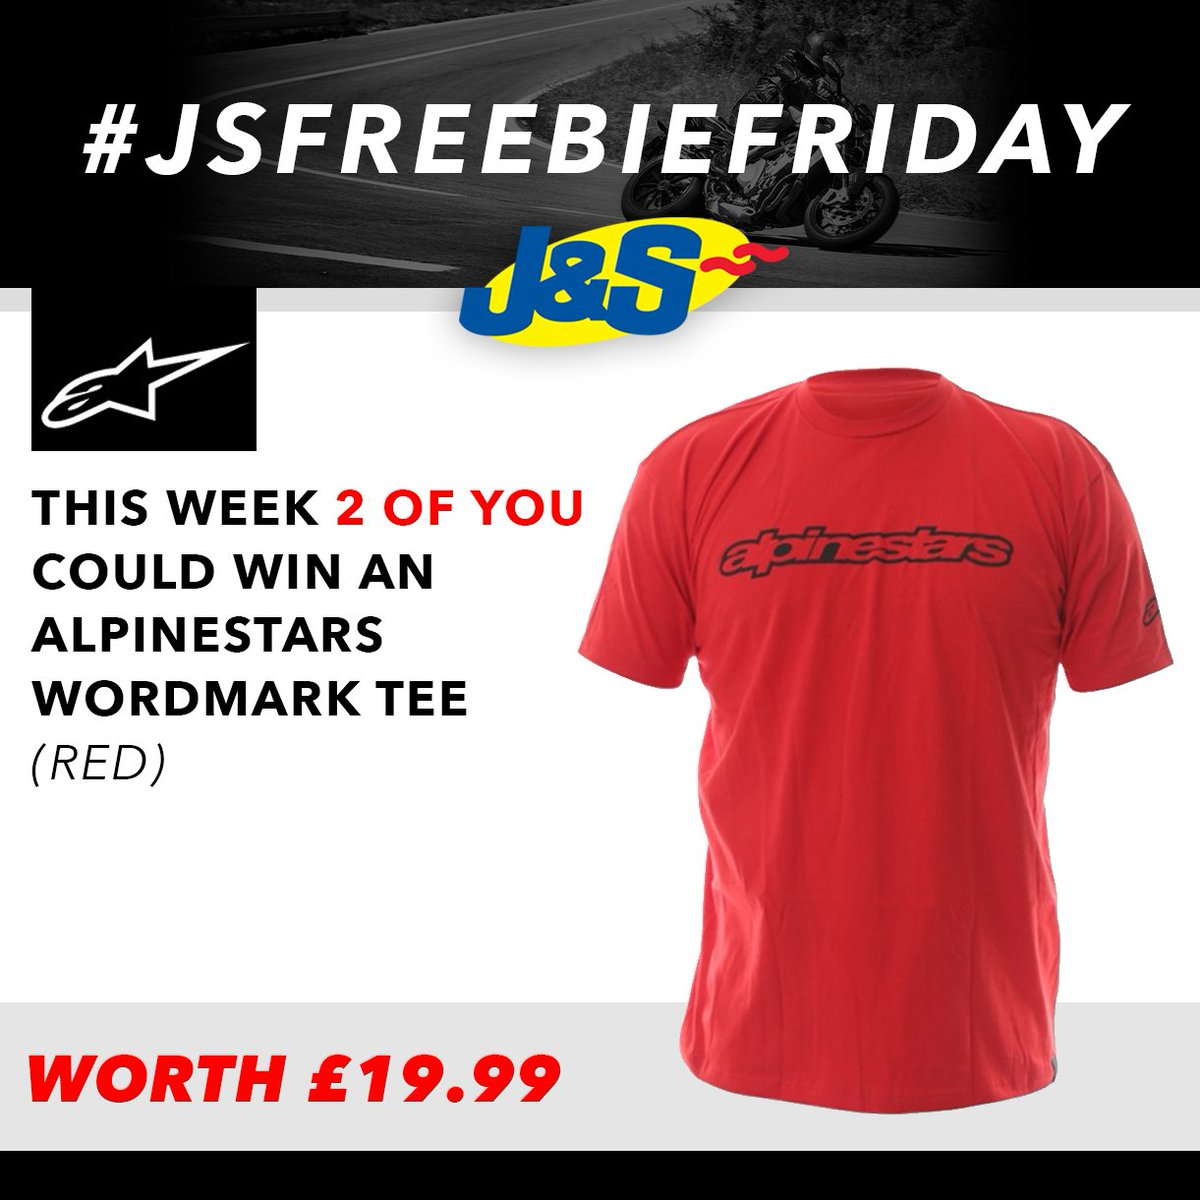 #JSFREEBIEFRIDAY follow us and retweet this for a chance to win one of two Alpinestars Wordmark T-Shirts worth £19.99 each. Ends Tues July 31st. You can also enter by signing up to our newsletter here:  Happy Friday everyone!